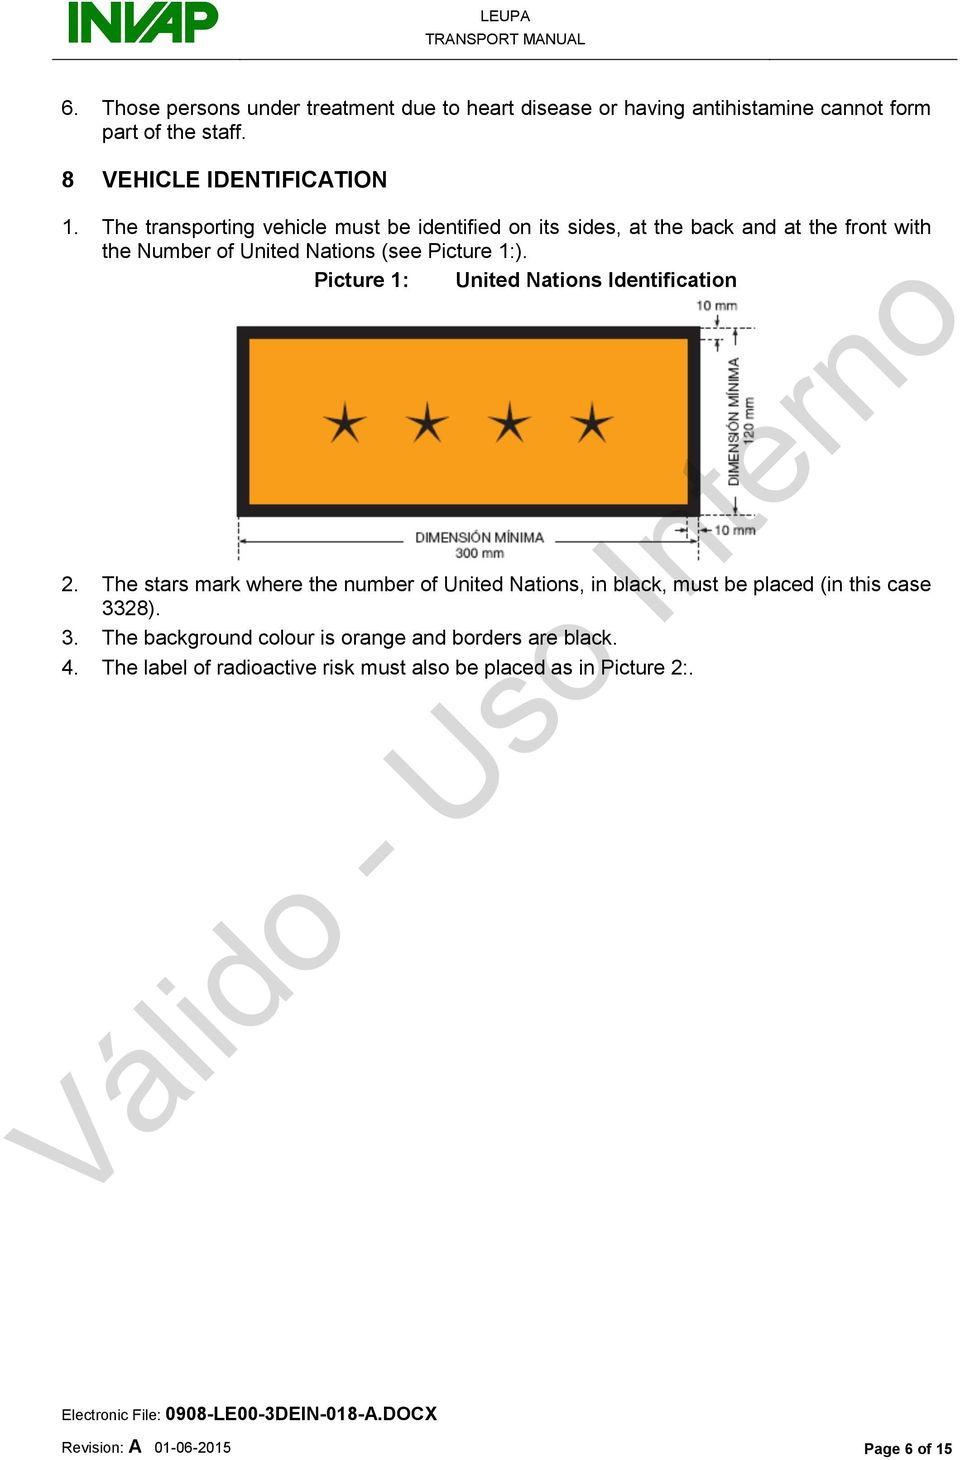 Picture 1: United Nations Identification 2. The stars mark where the number of United Nations, in black, must be placed (in this case 33